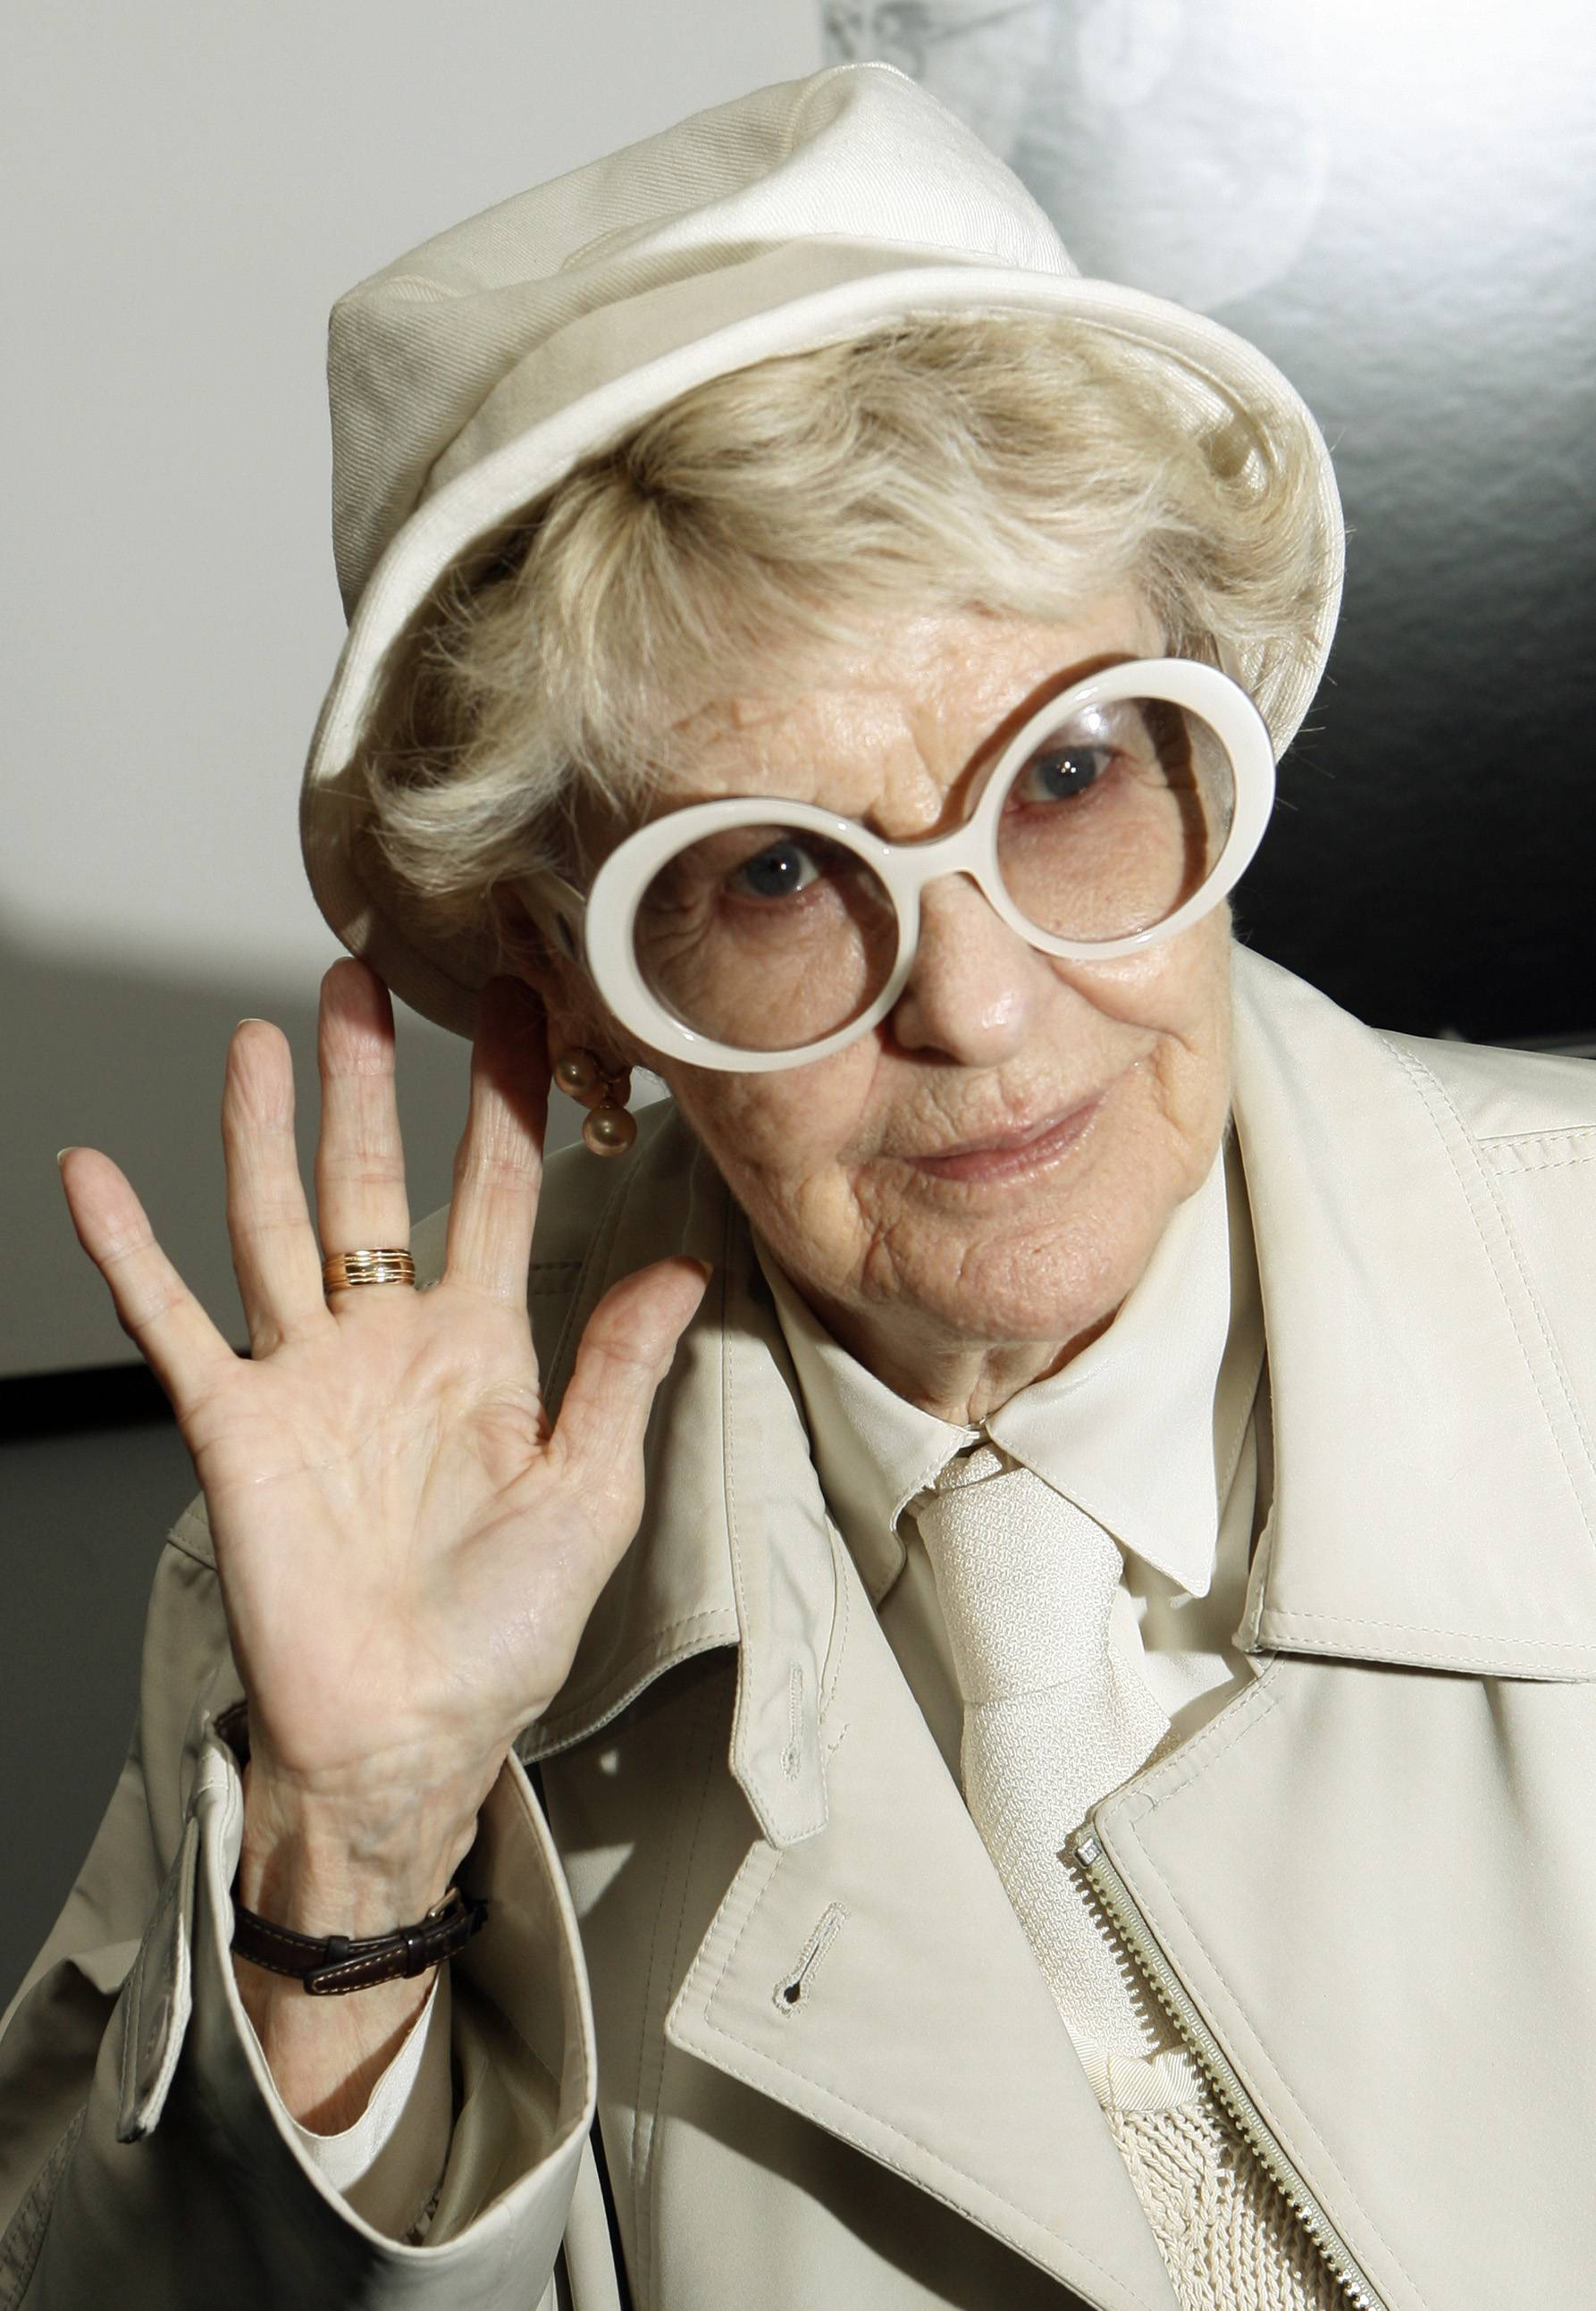 Actress Elaine Stritch died Thursday at her home in Birmingham, Mich. She was 89